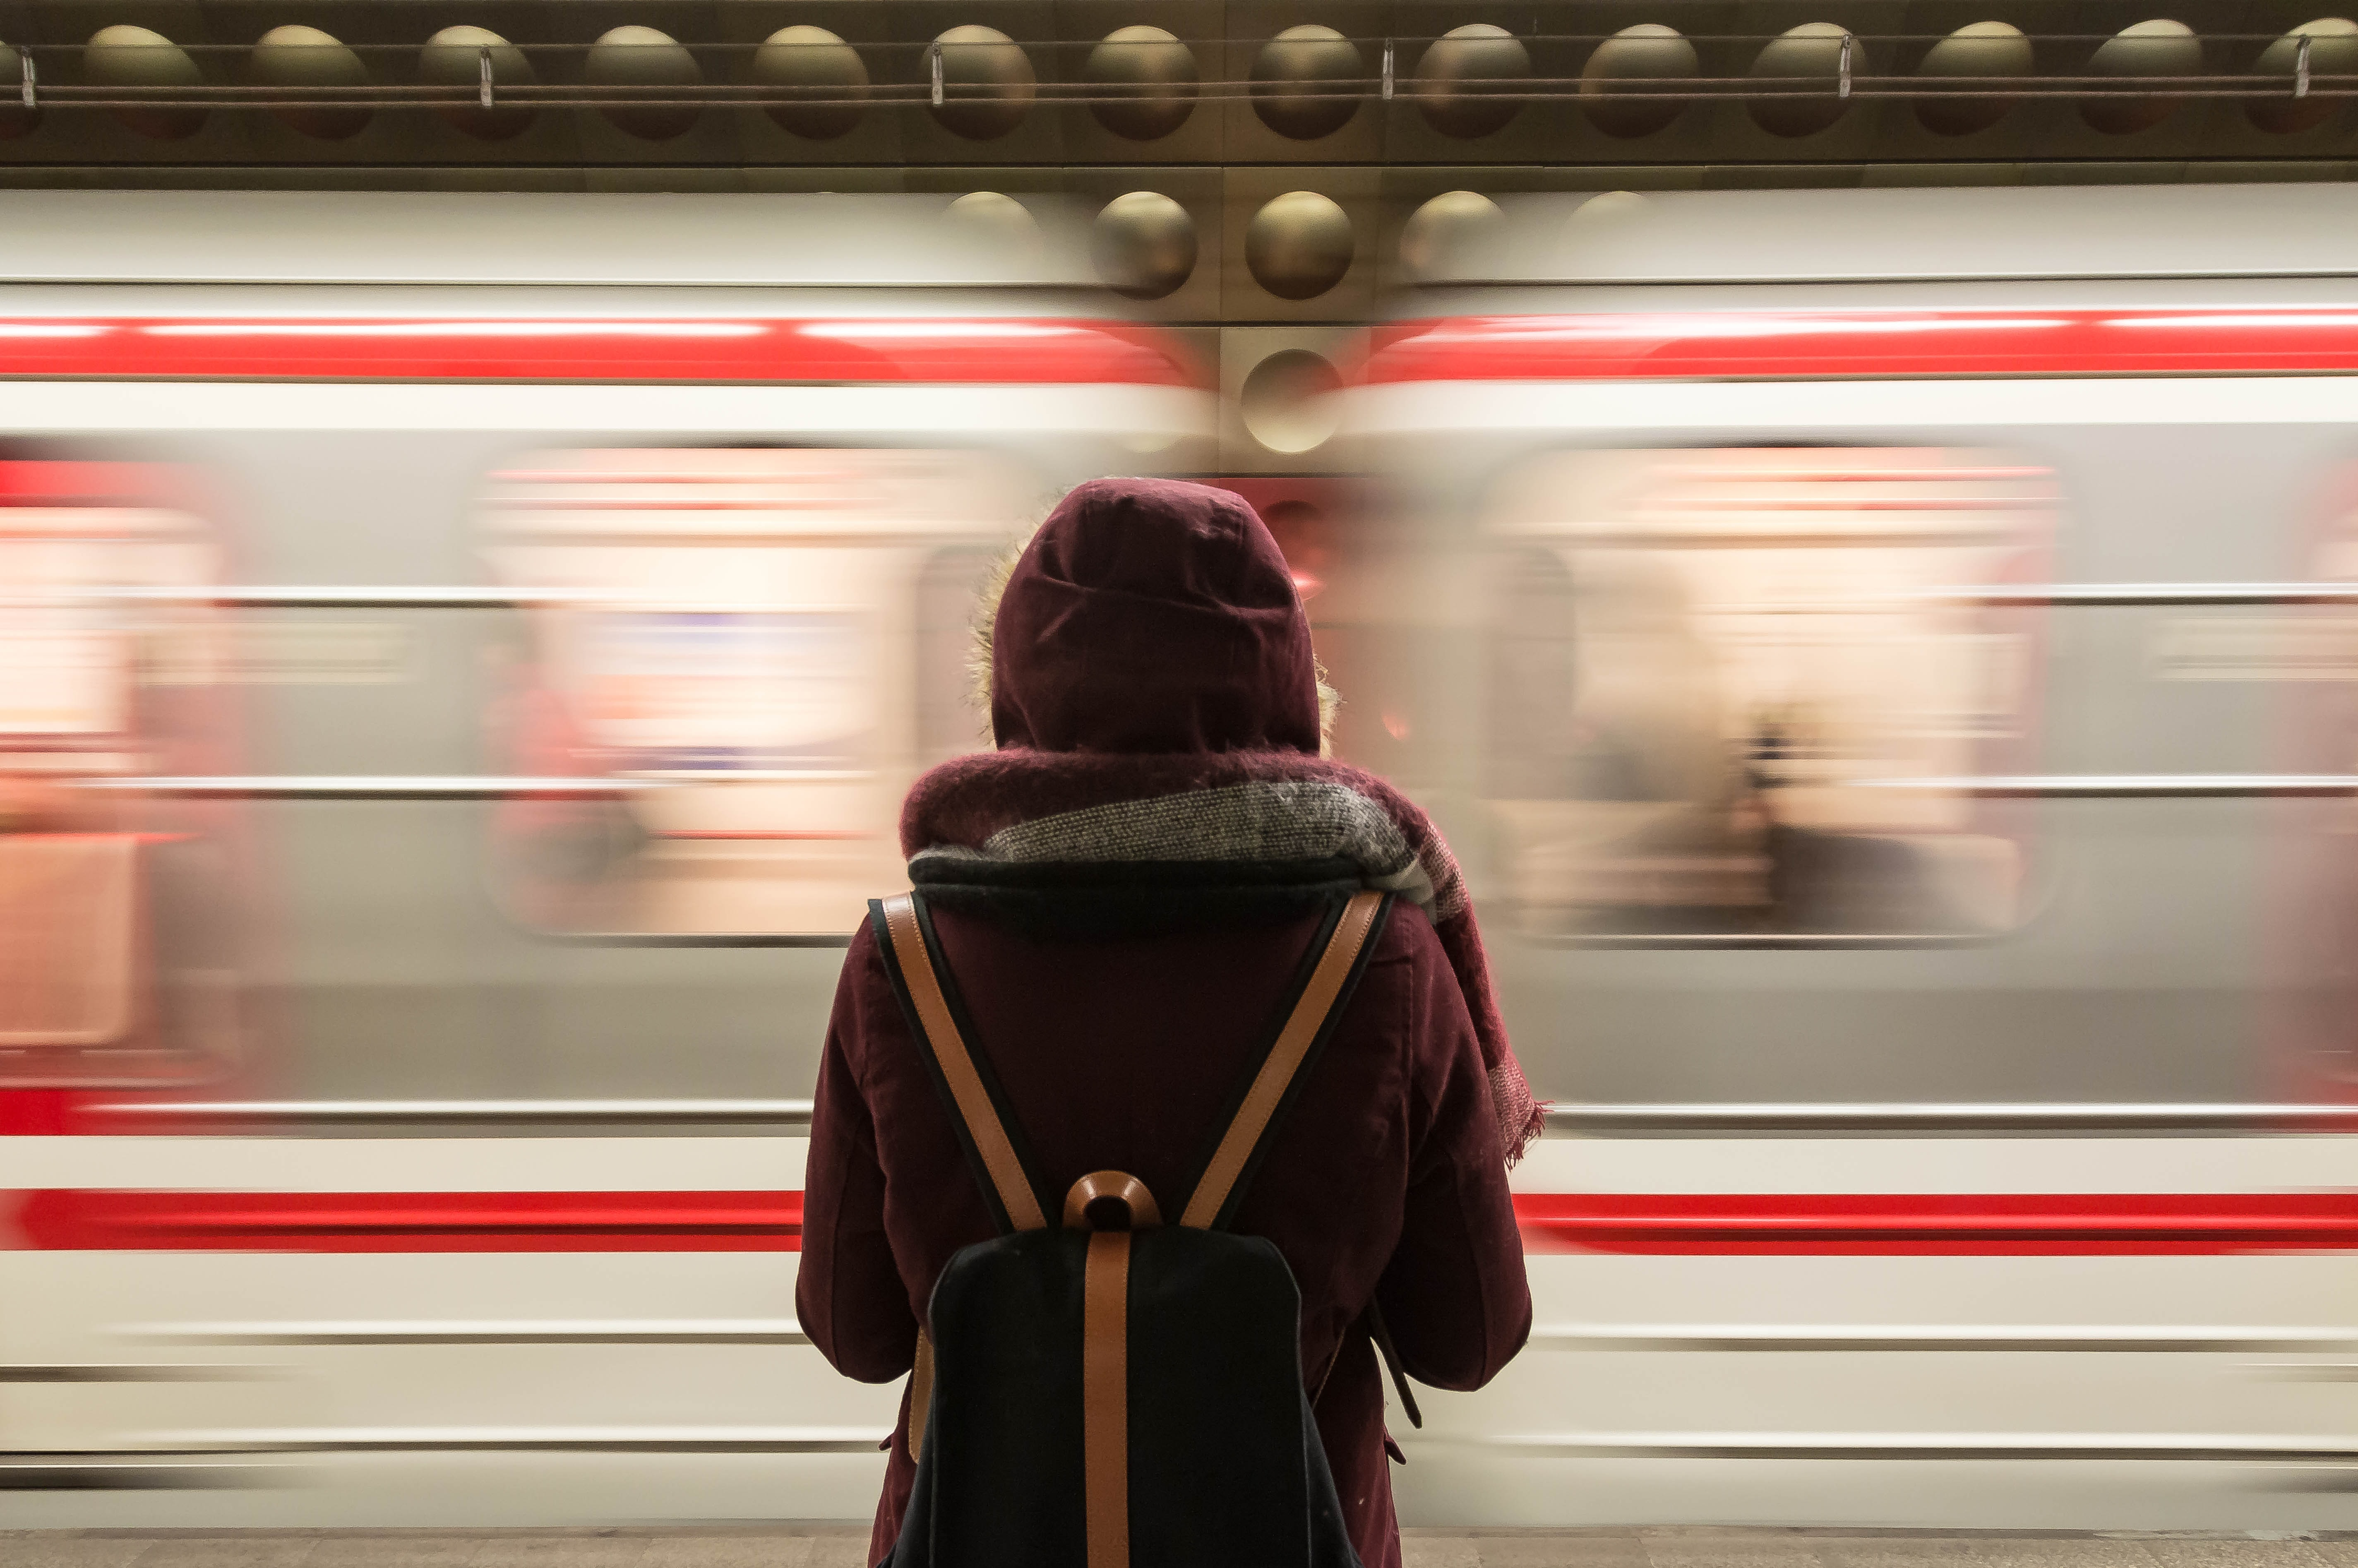 time-lapse photography of woman standing in front of train